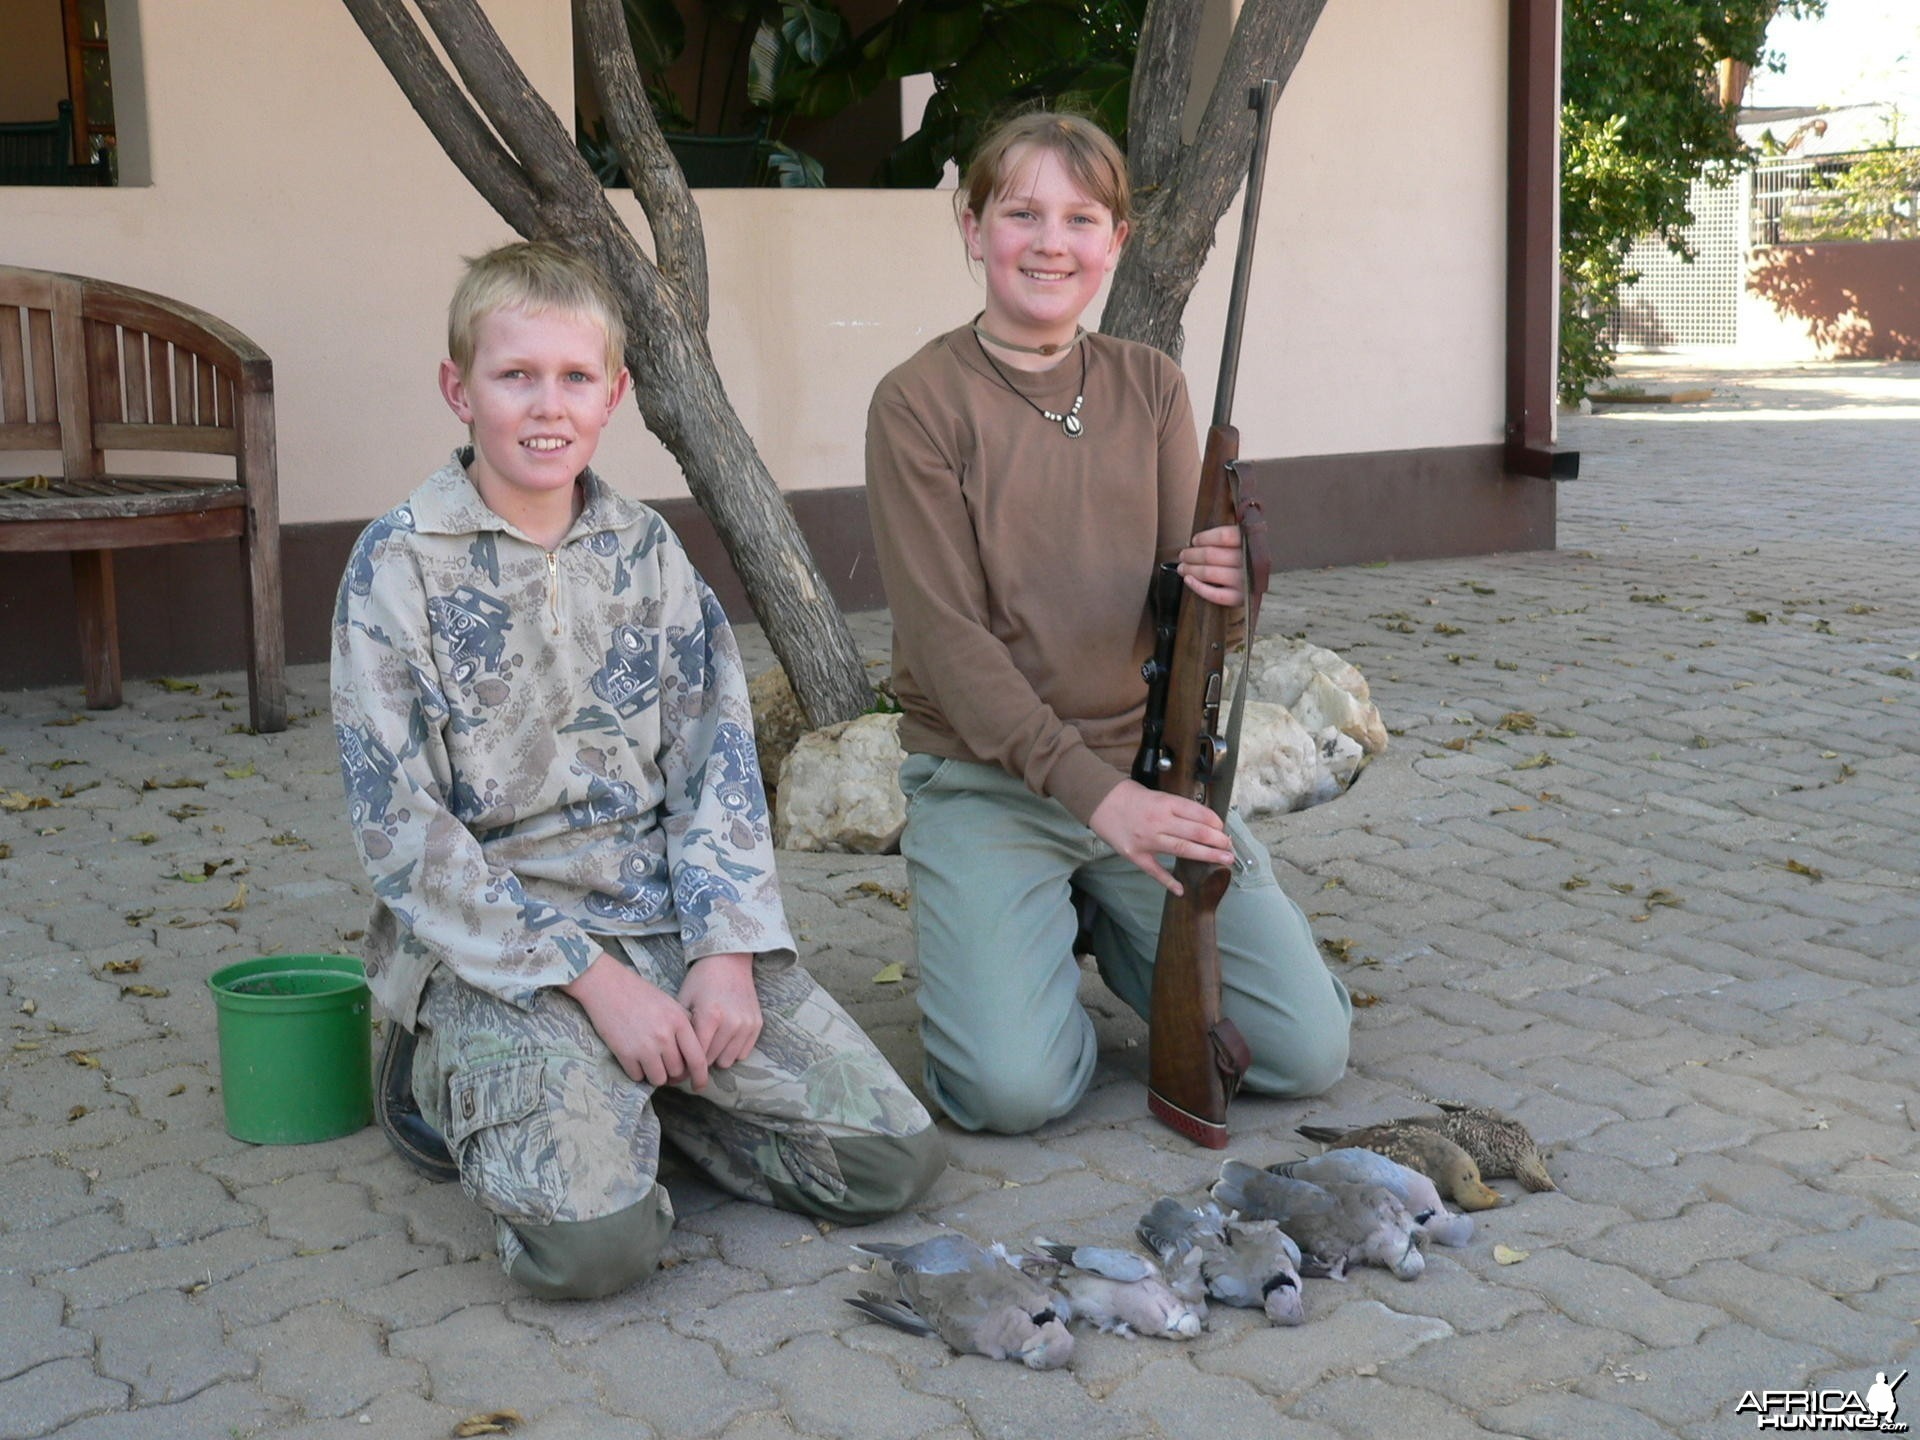 Her first hunt is in Africa